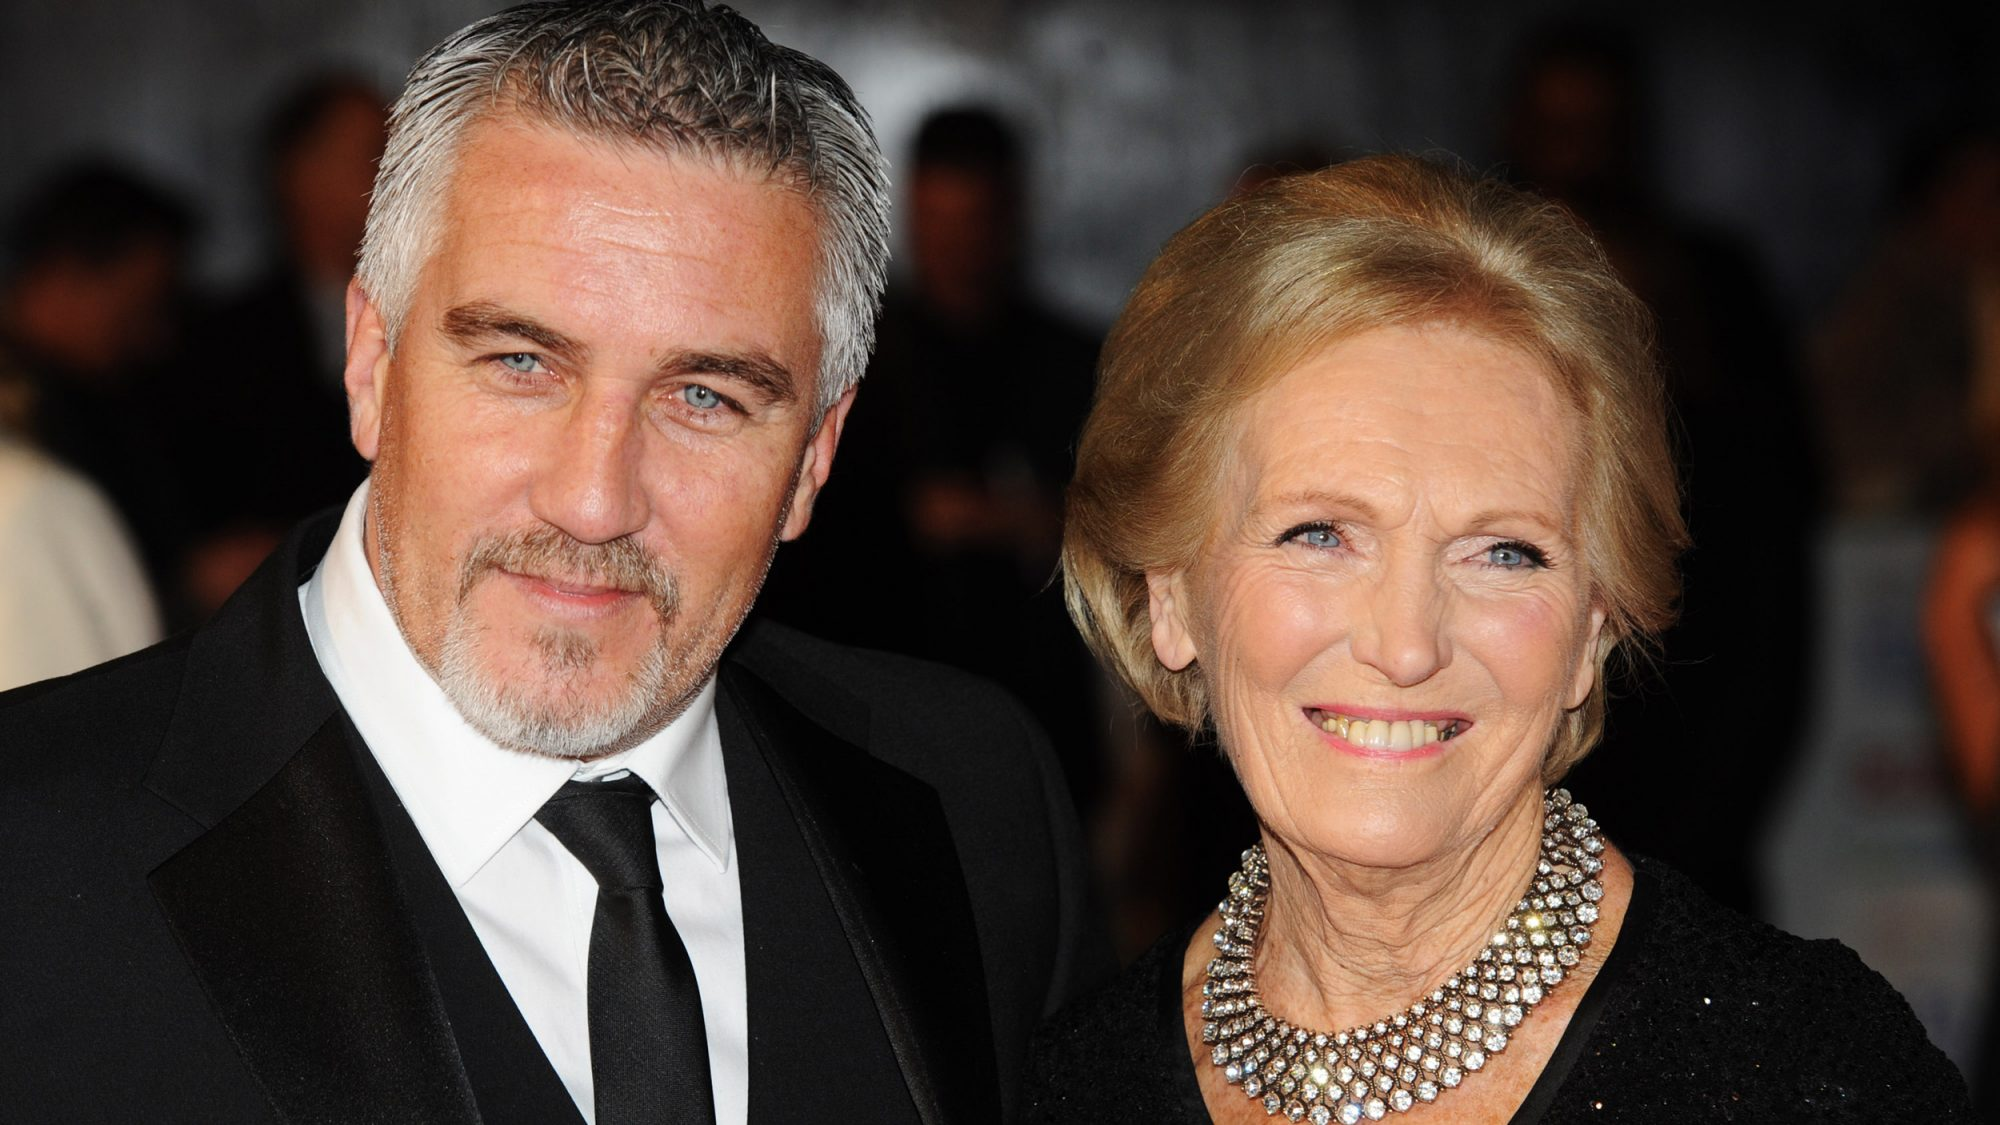 The Great American Baking Show Could Reunite Mary Berry and Paul Hollywood